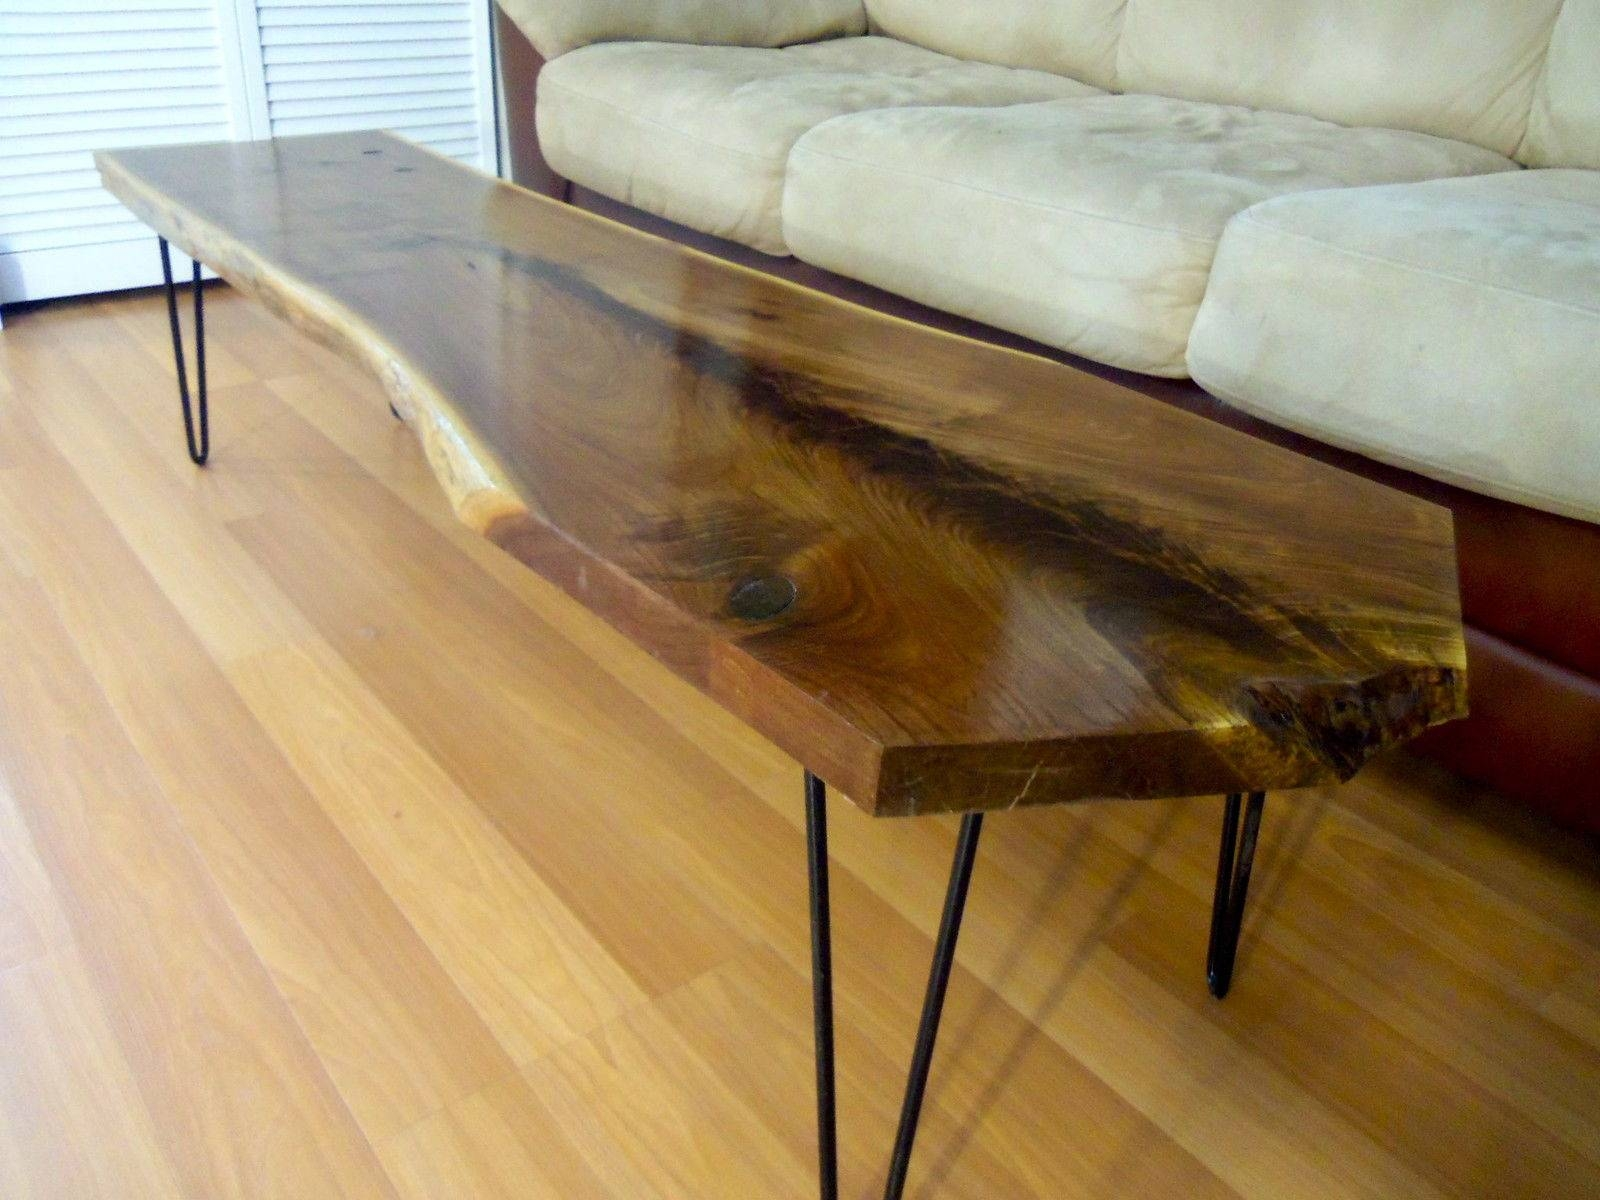 Natural Wood Coffee Table For Your Furniture - Chocoaddicts regarding Natural Wood Coffee Tables (Image 10 of 15)